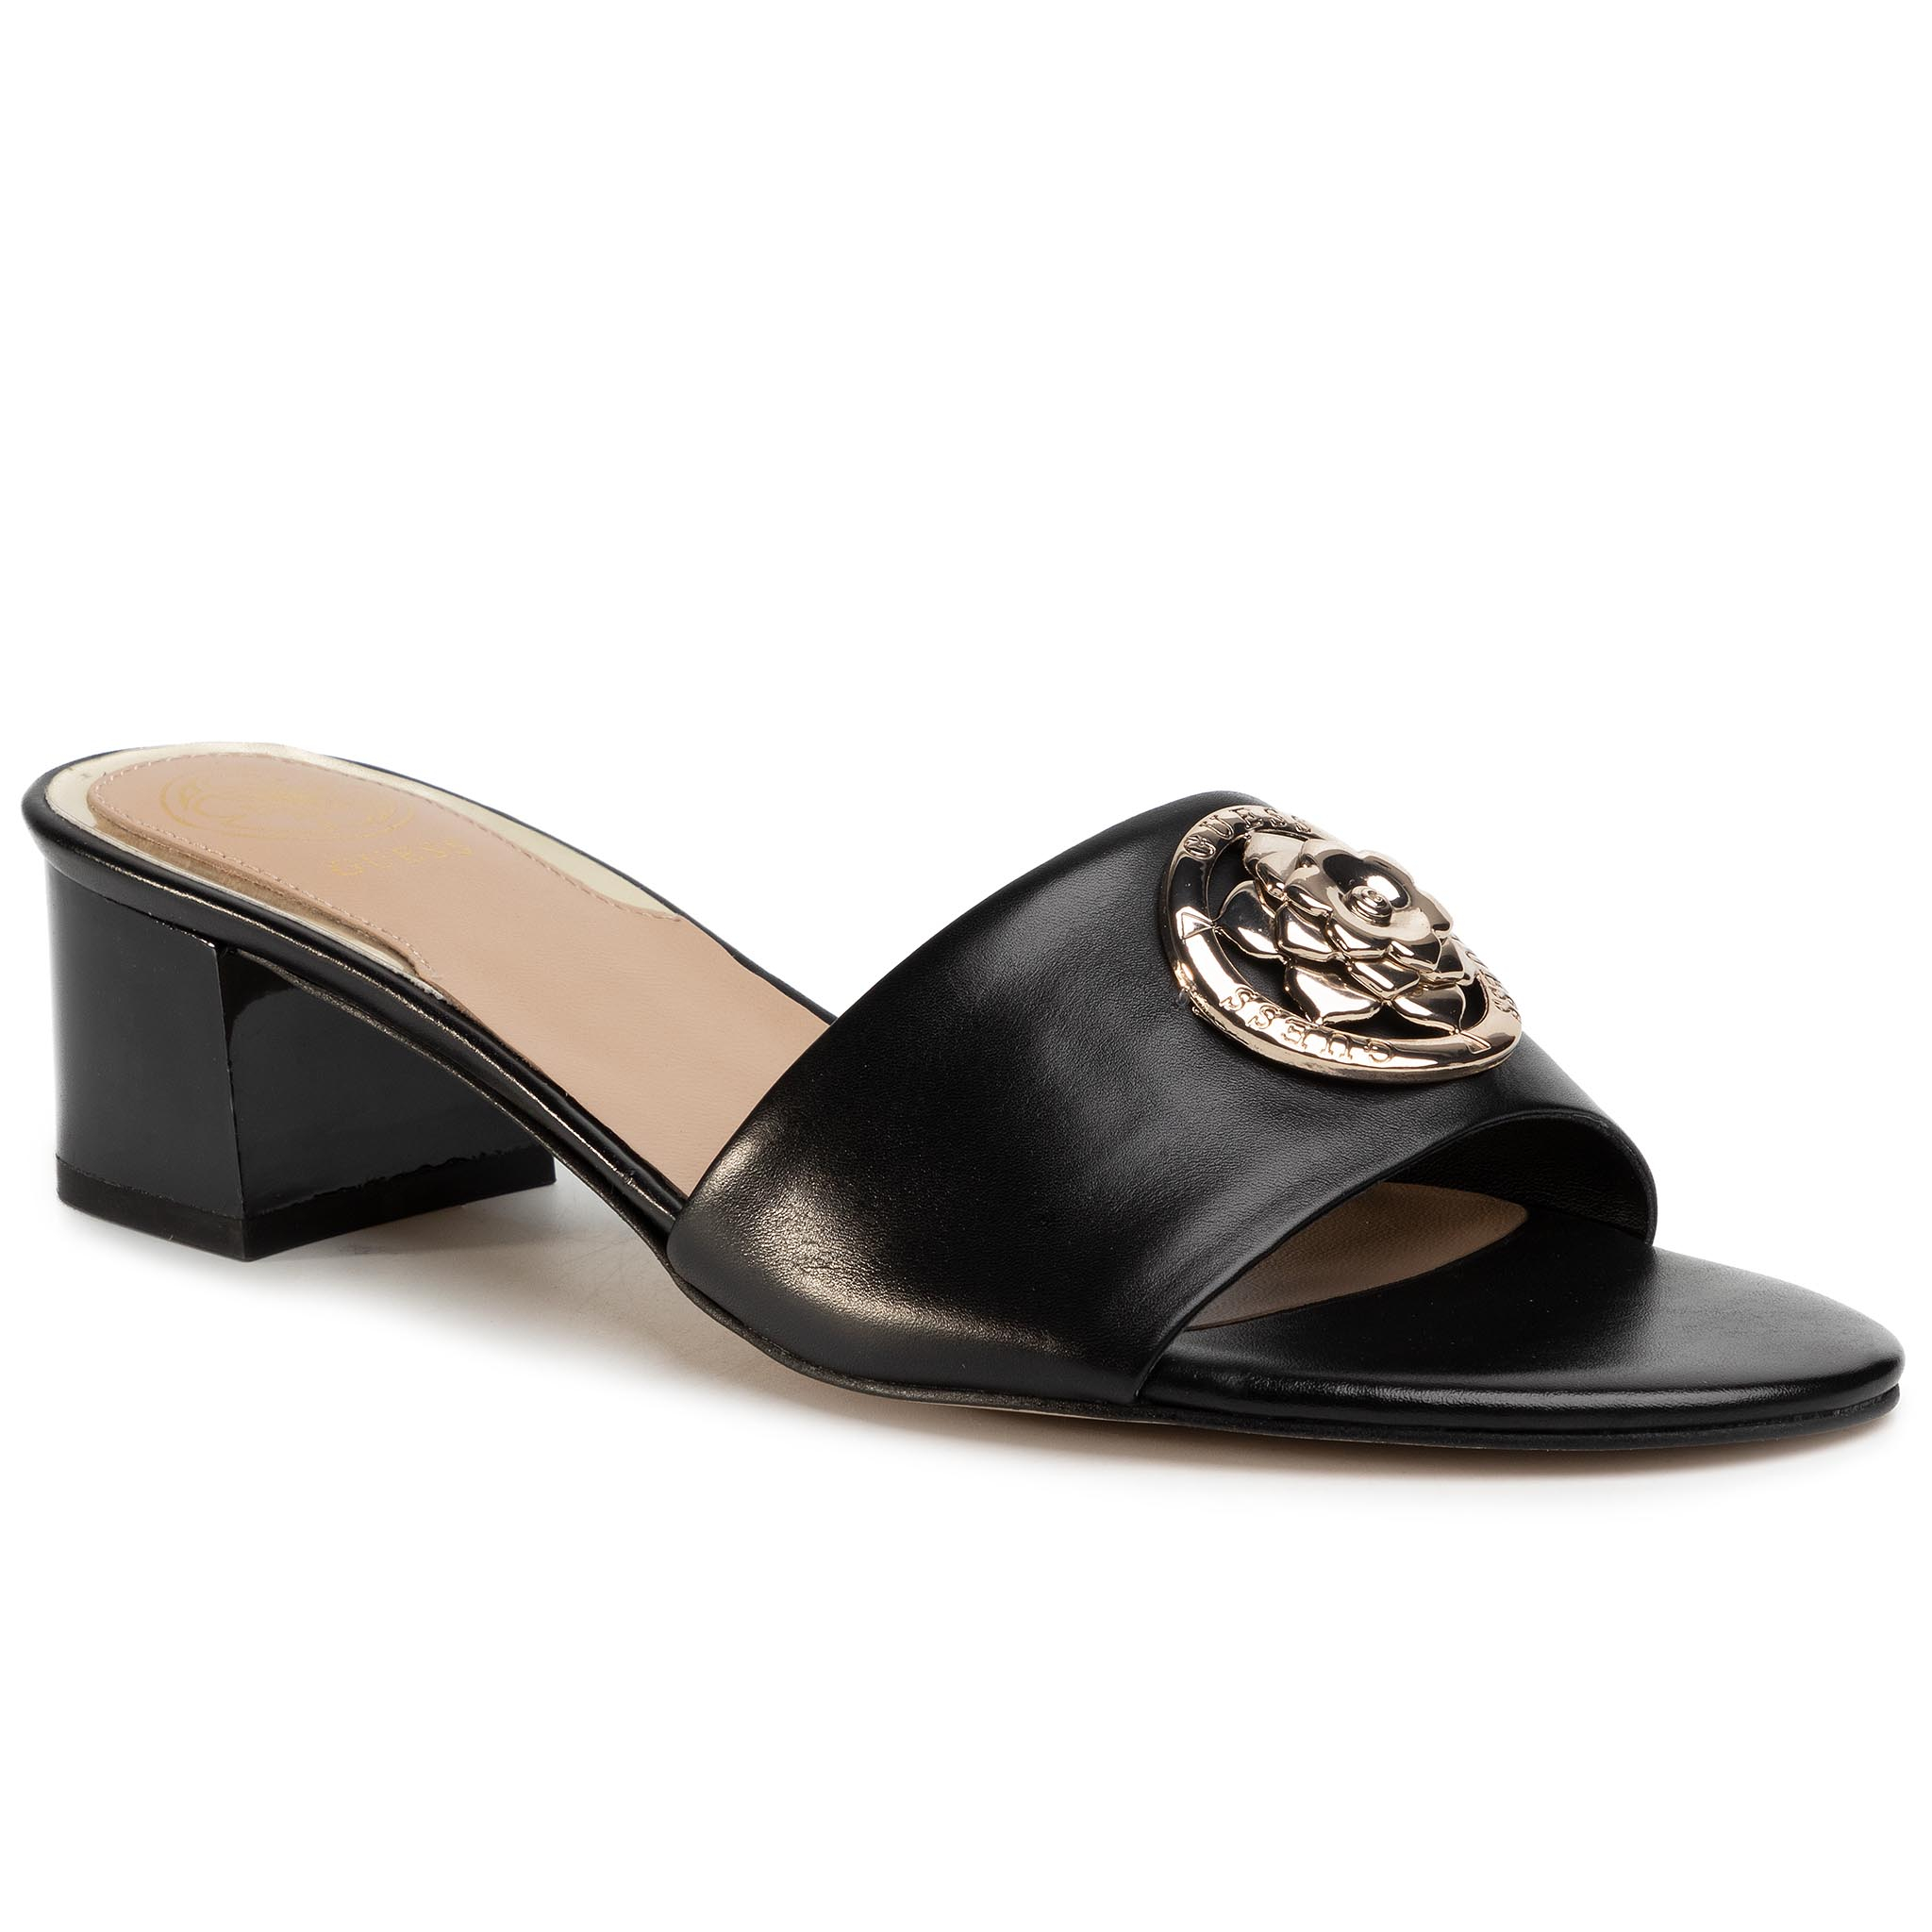 Șlapi Guess - Darice2 Fl6de2 Lea19 Black imagine epantofi.ro 2021